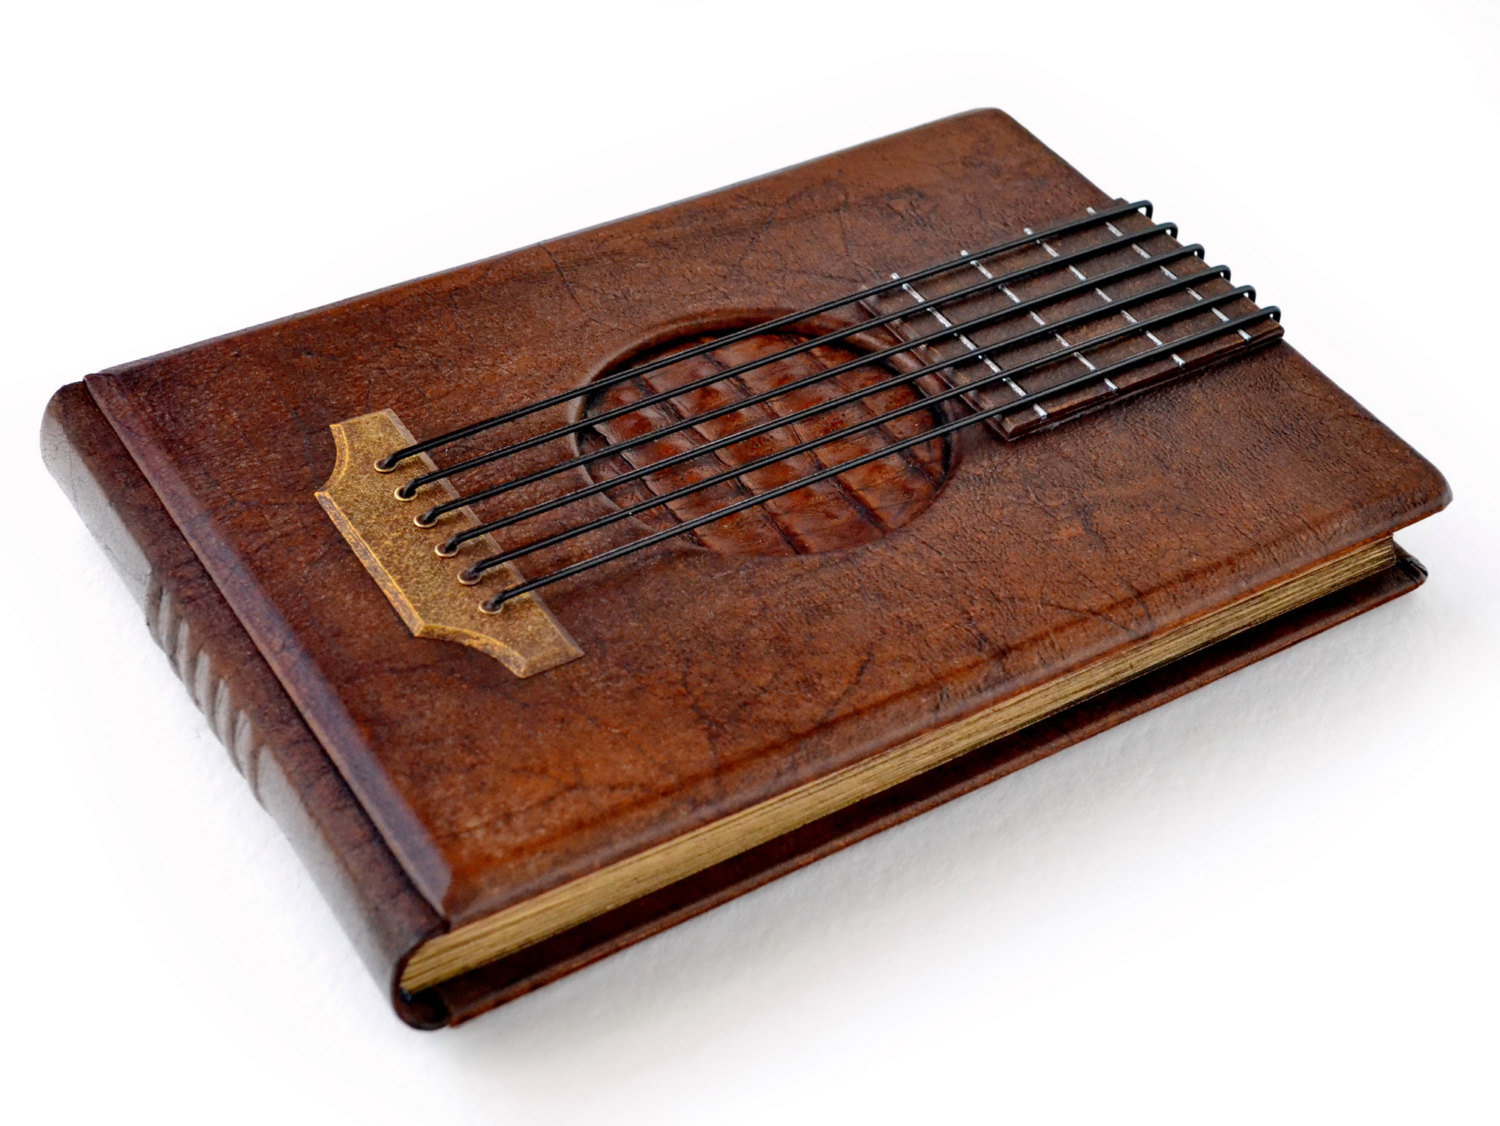 Bard leather journal